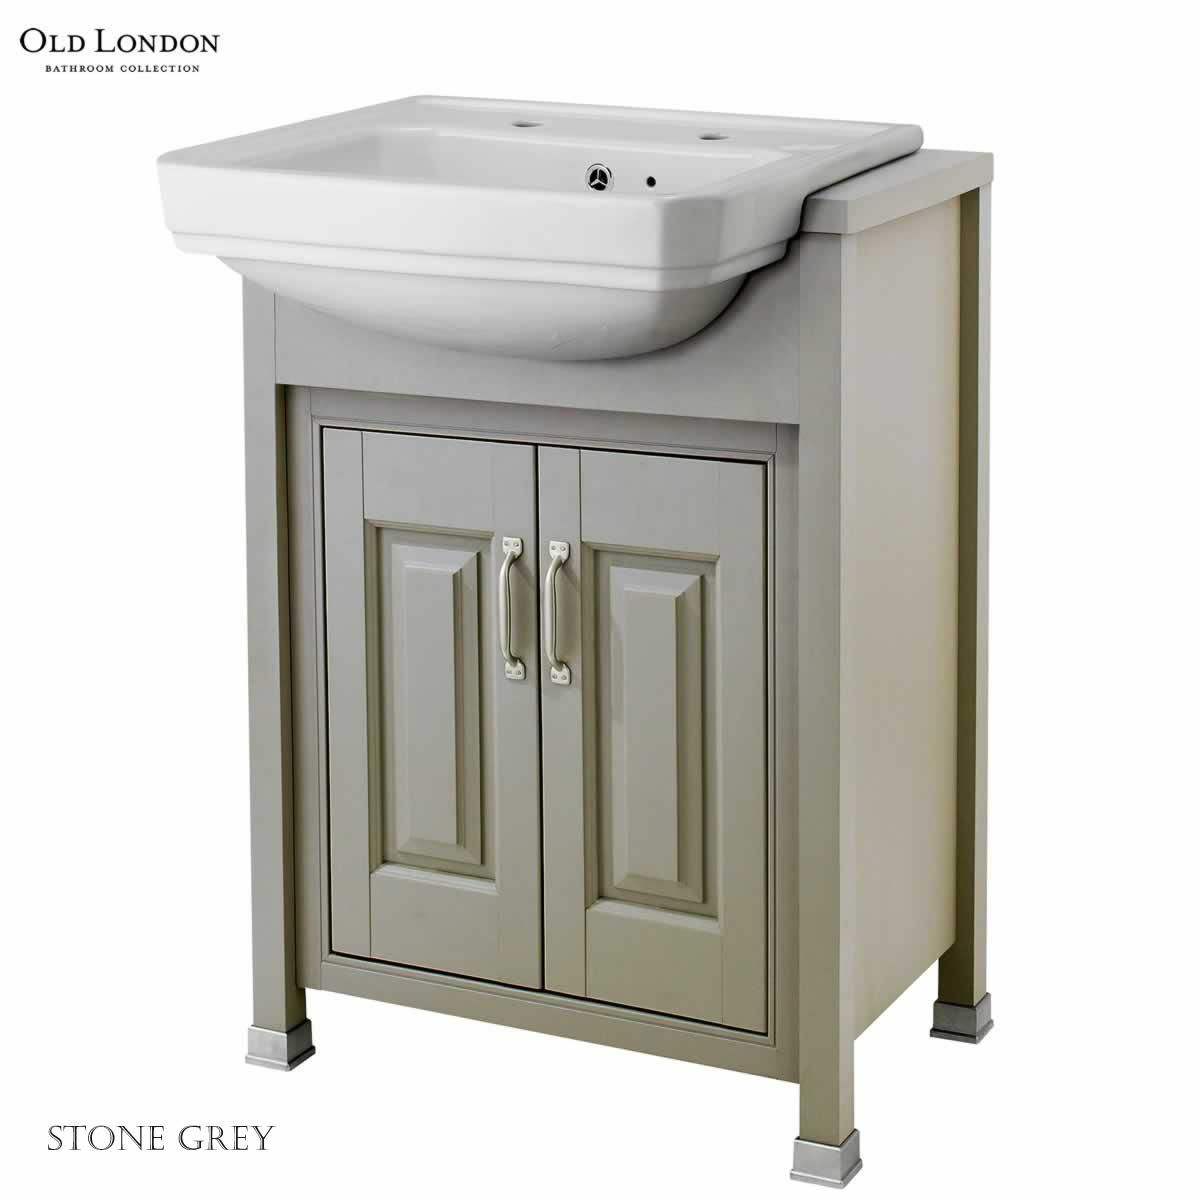 Amazing  Aqua Cabinets  View All Bathrooms  View All Bathroom Furniture